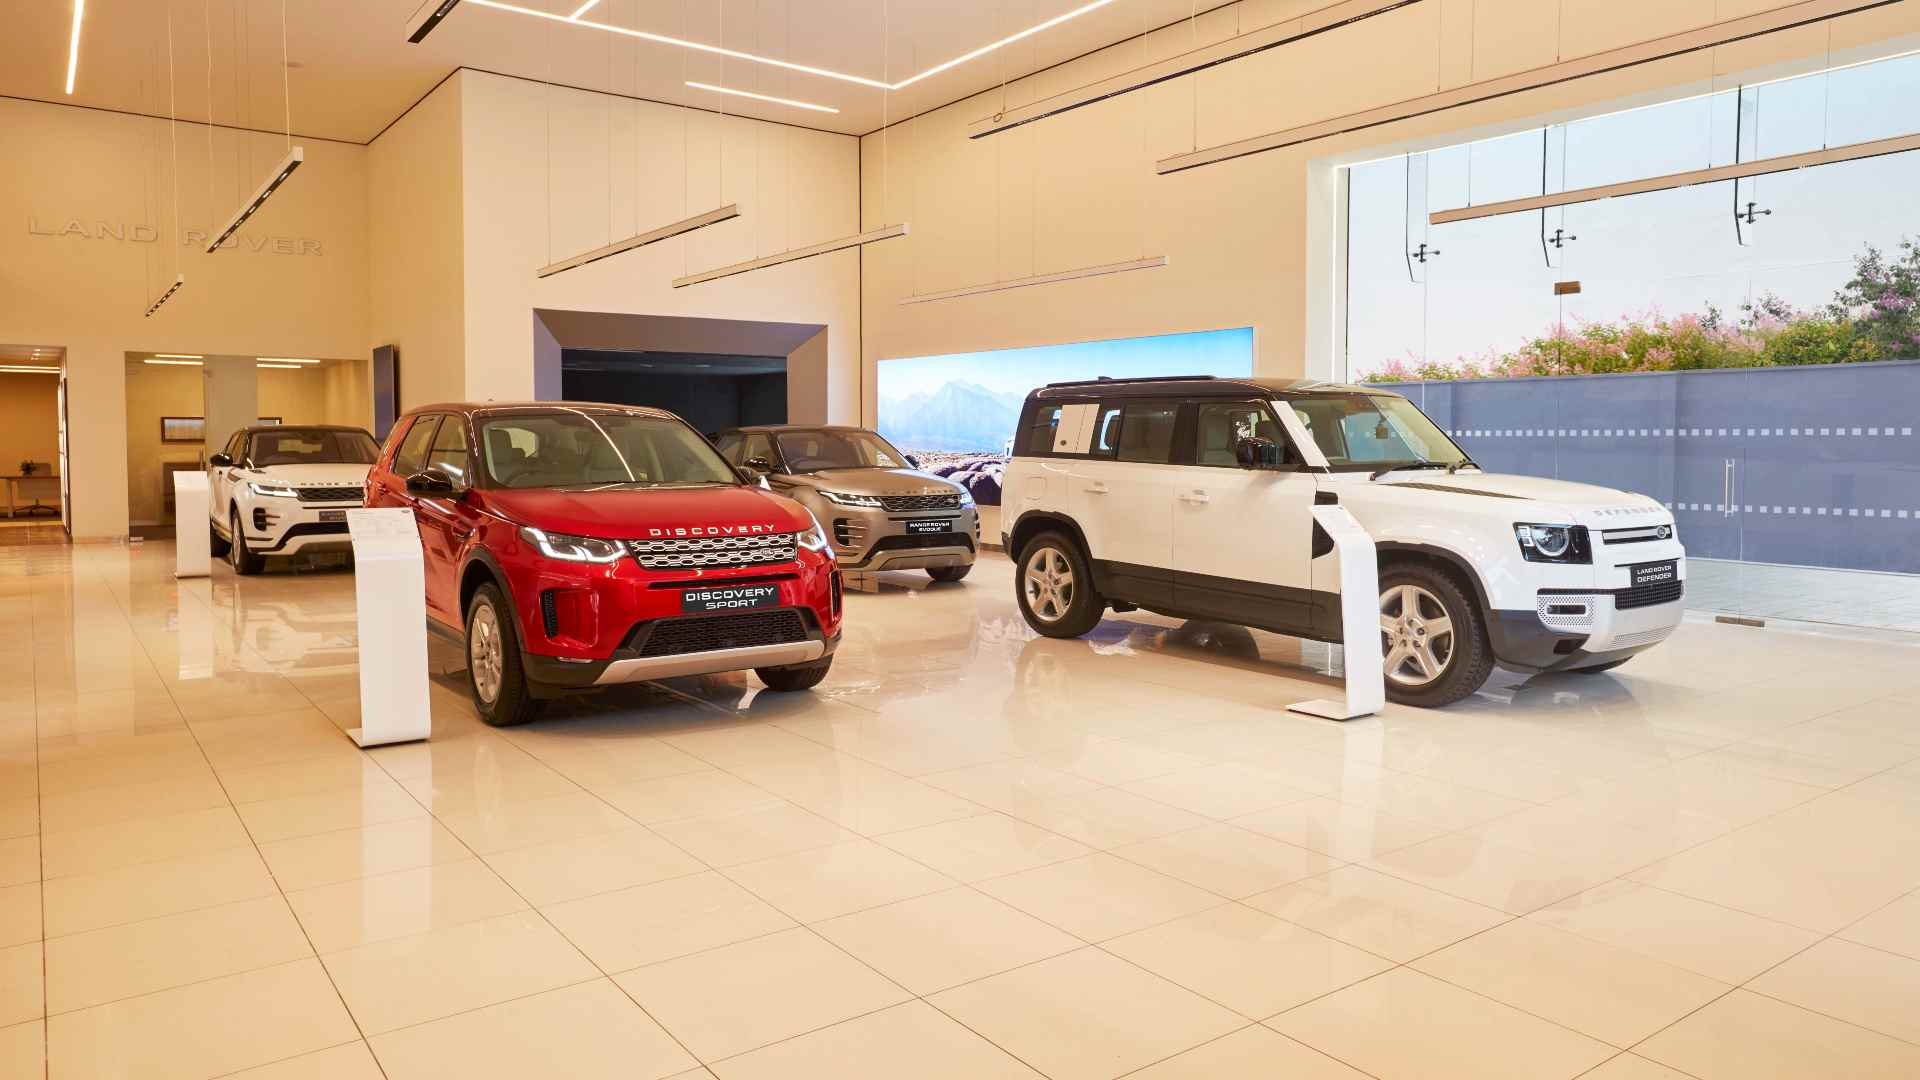 Jaguar Land Rover India lines up 10 model launches and portfolio updates for FY22